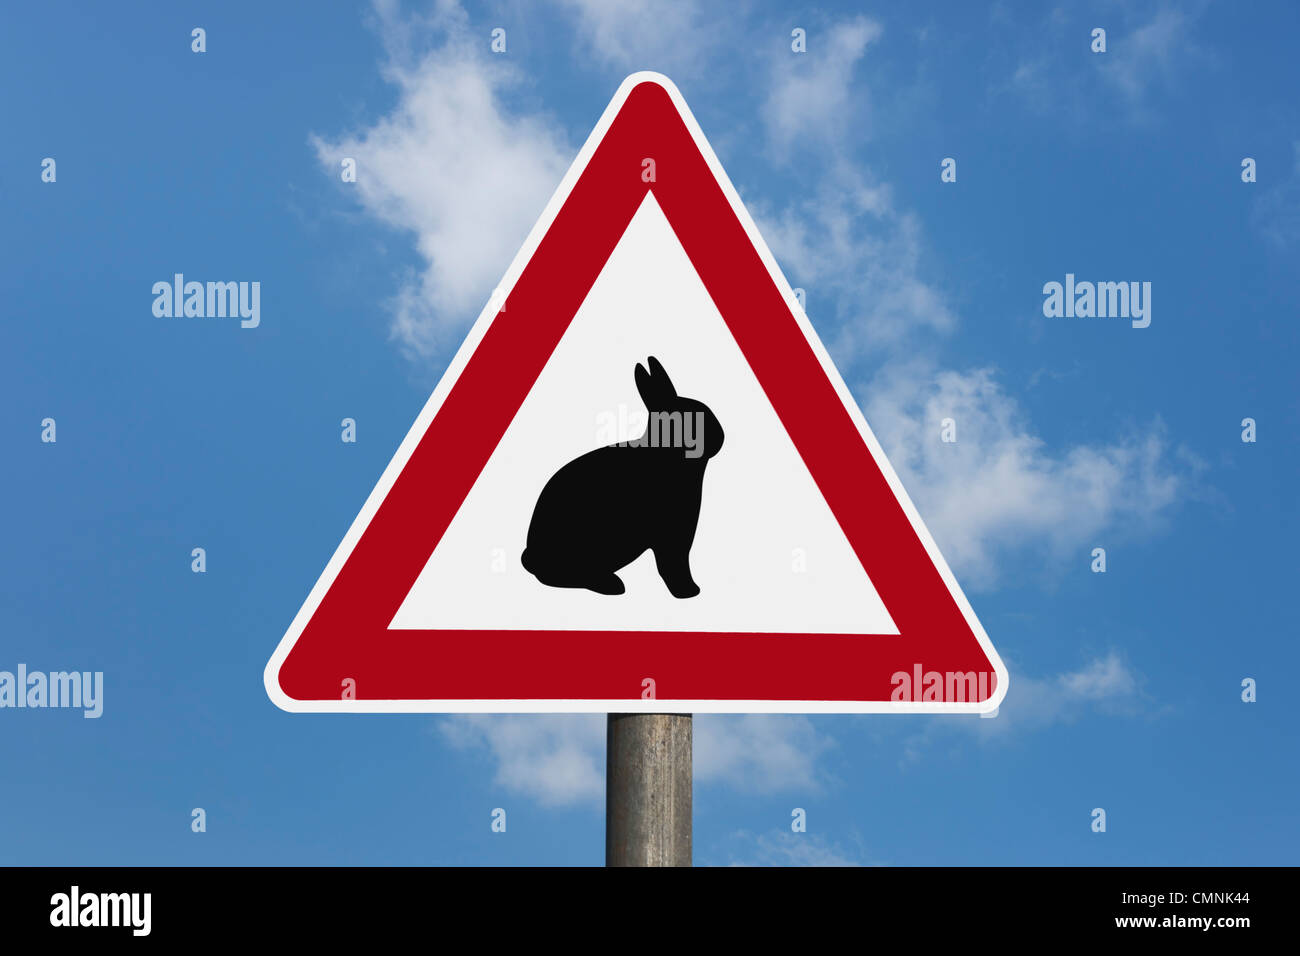 Detail photo of a danger sign with a bunny in the middle, background sky. - Stock Image